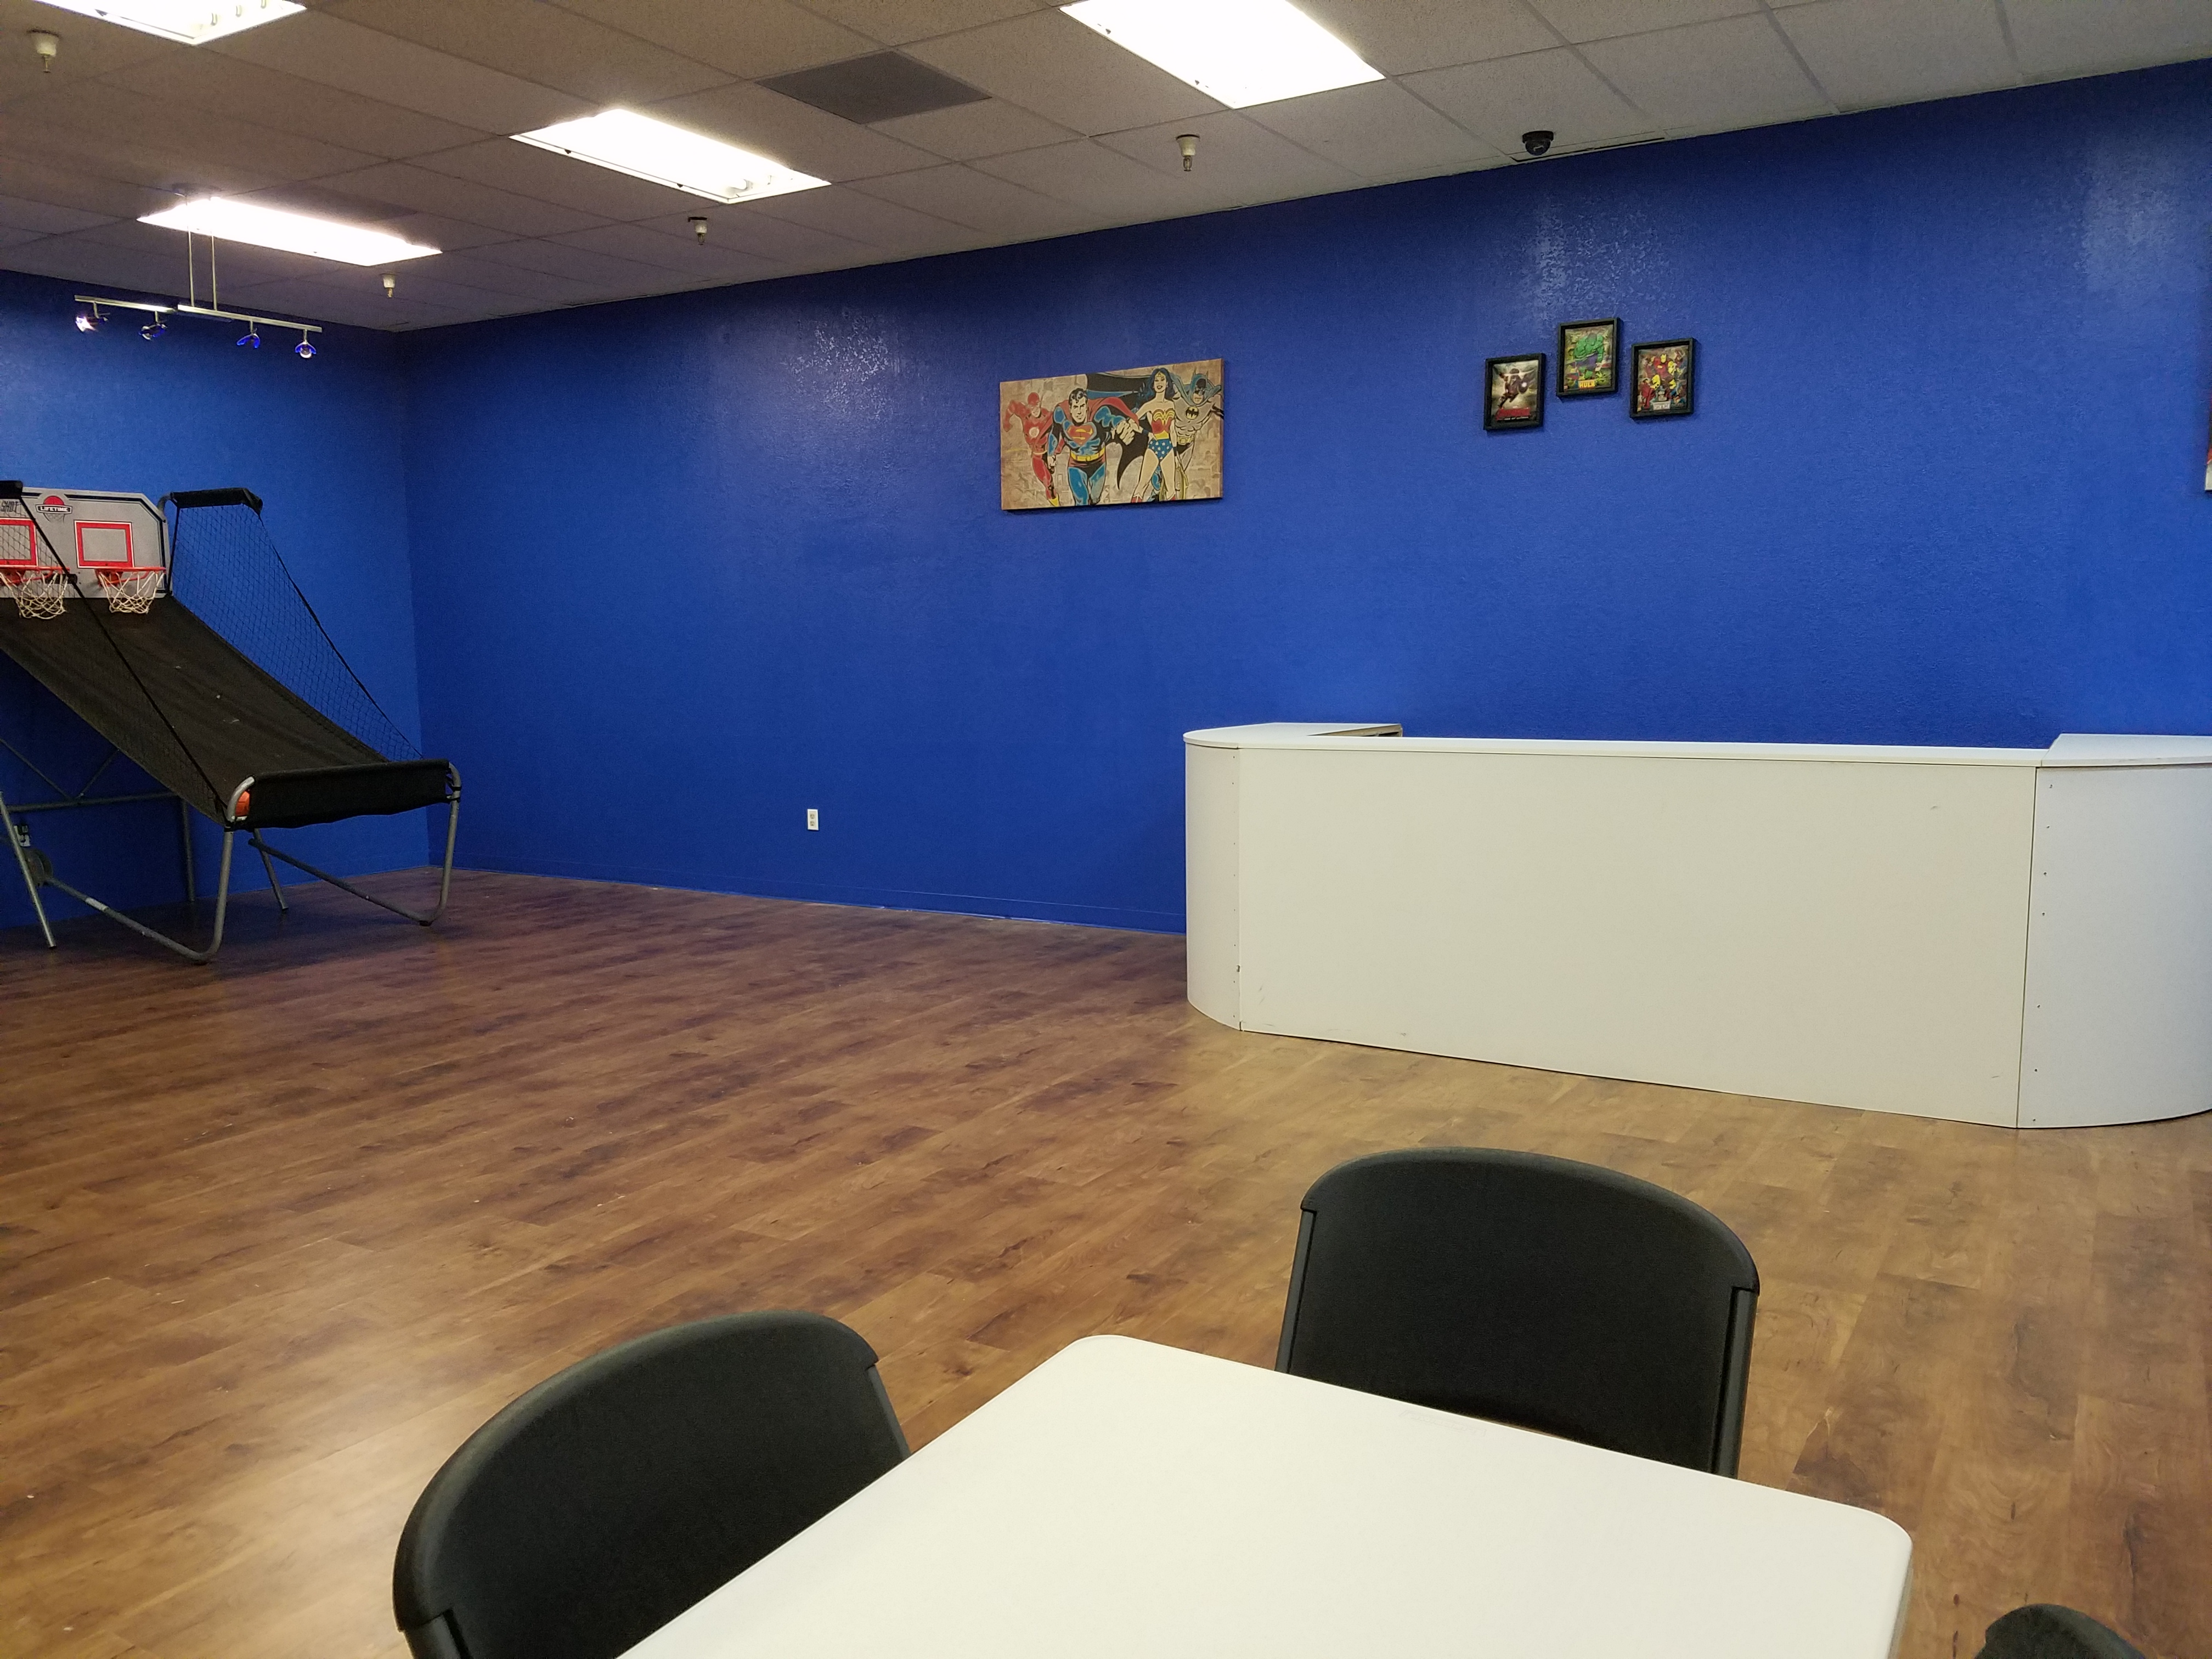 Laser tag party room 1